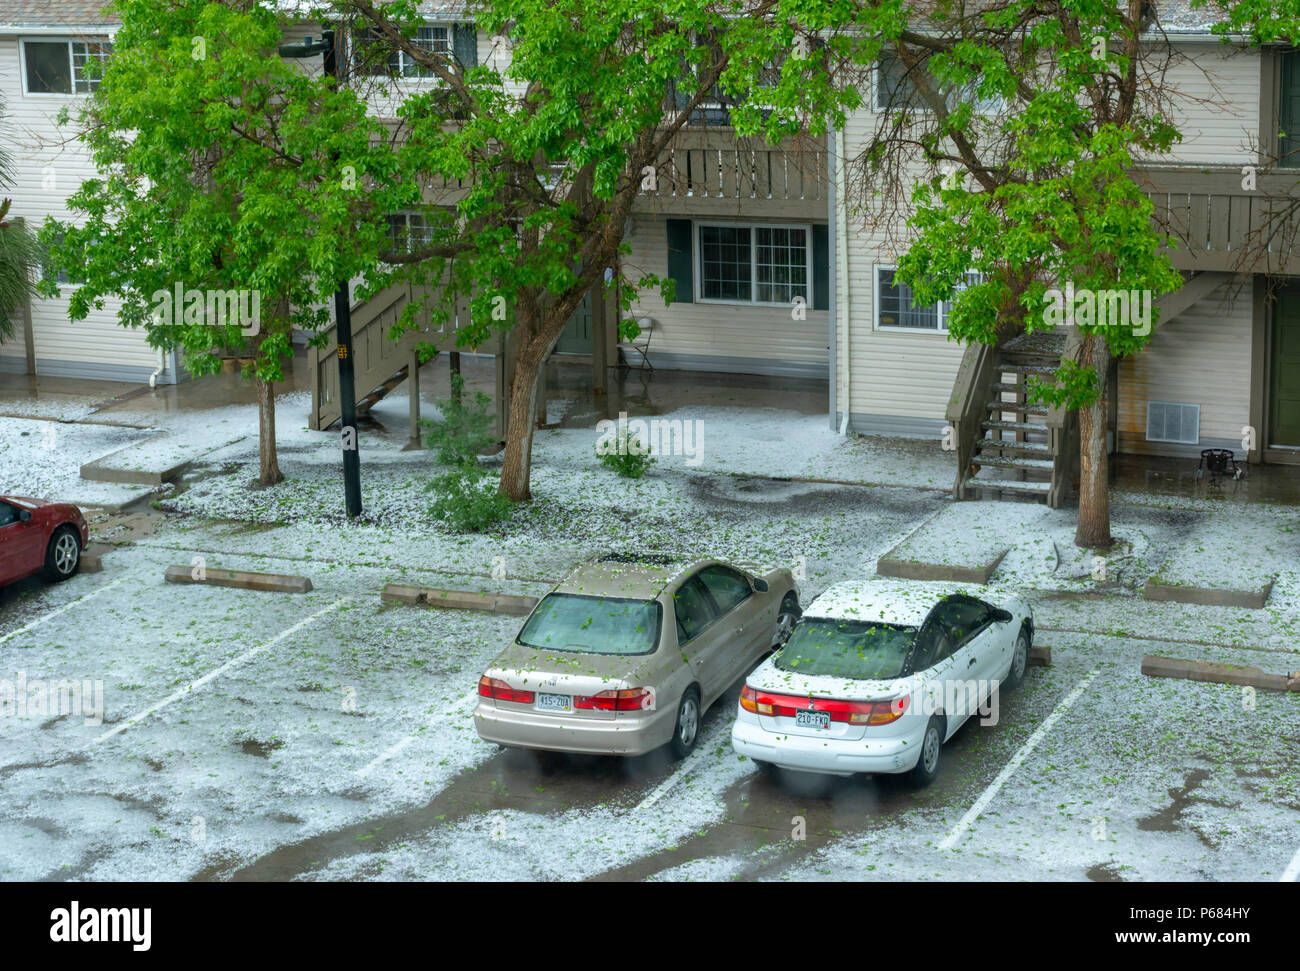 Hailstorm on parked cars of a suburban apartment building, Aurora Colorado US. Vertical streaks-(hail falling) white hail on parking area. - Stock Image